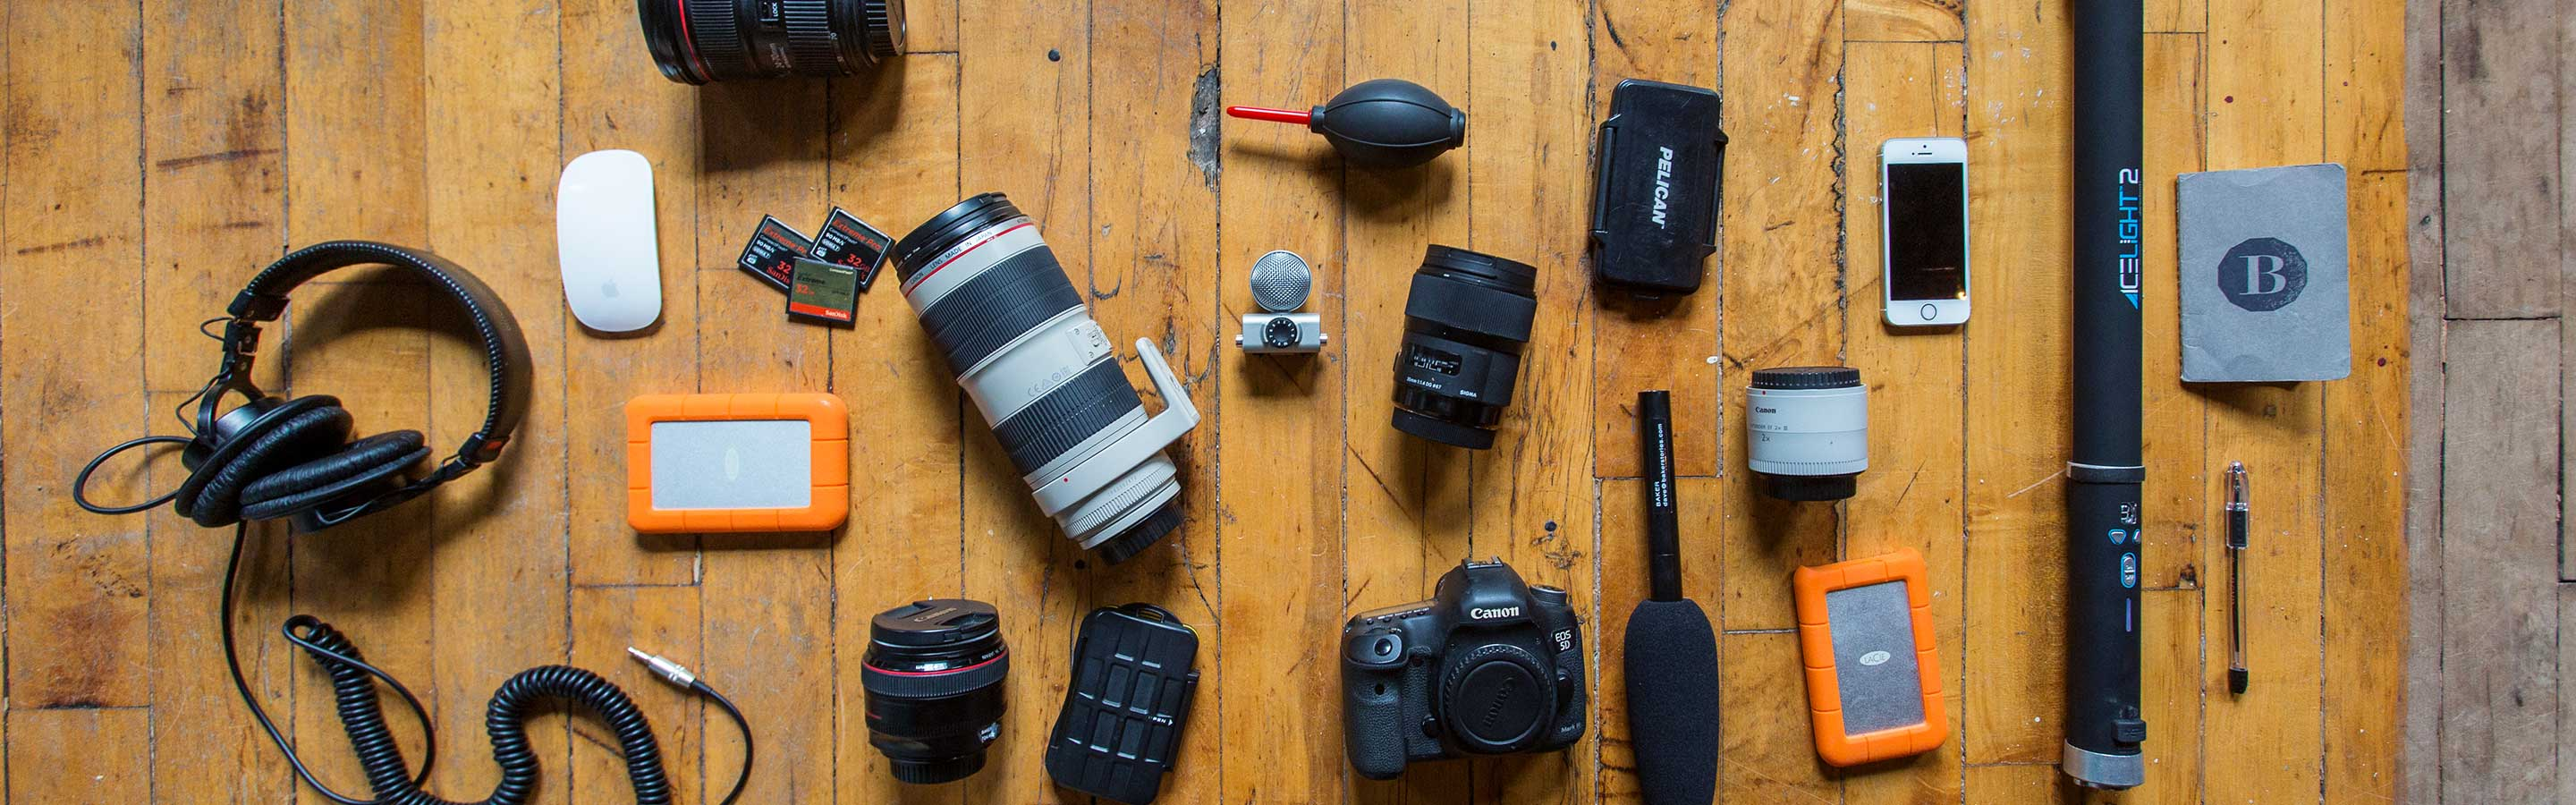 gearphoto-header Gear & Travel Accessories